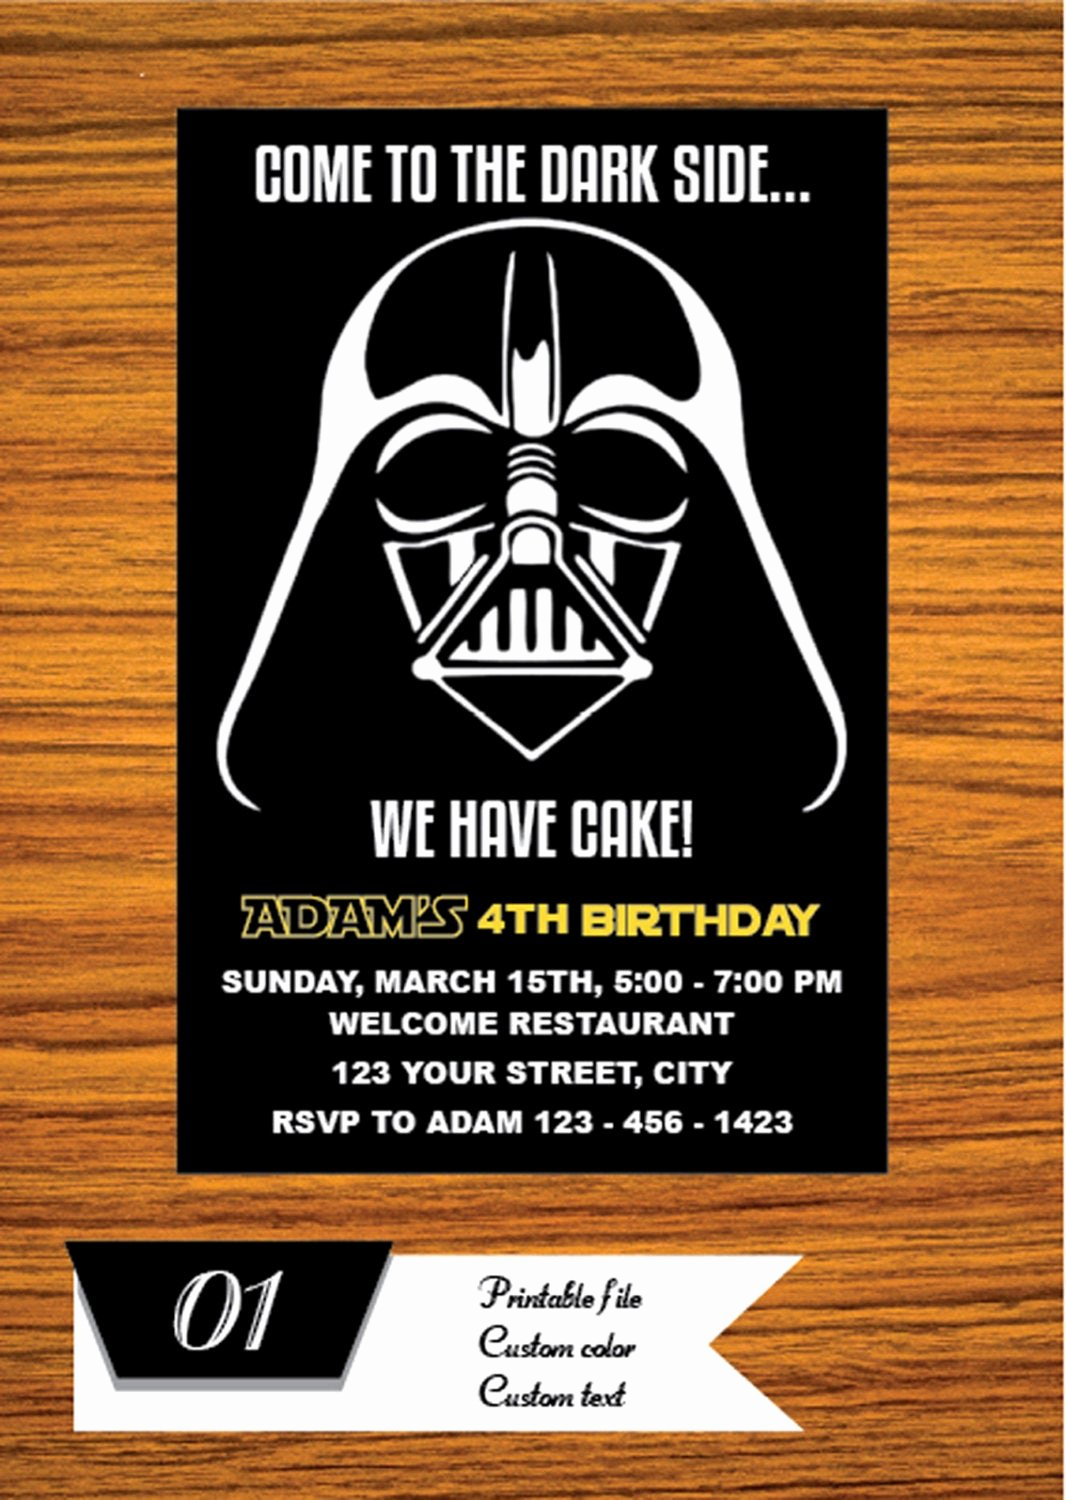 Star Wars Birthday Invites Inspirational Star Wars Invitation Star Wars Party Invitation Star Wars